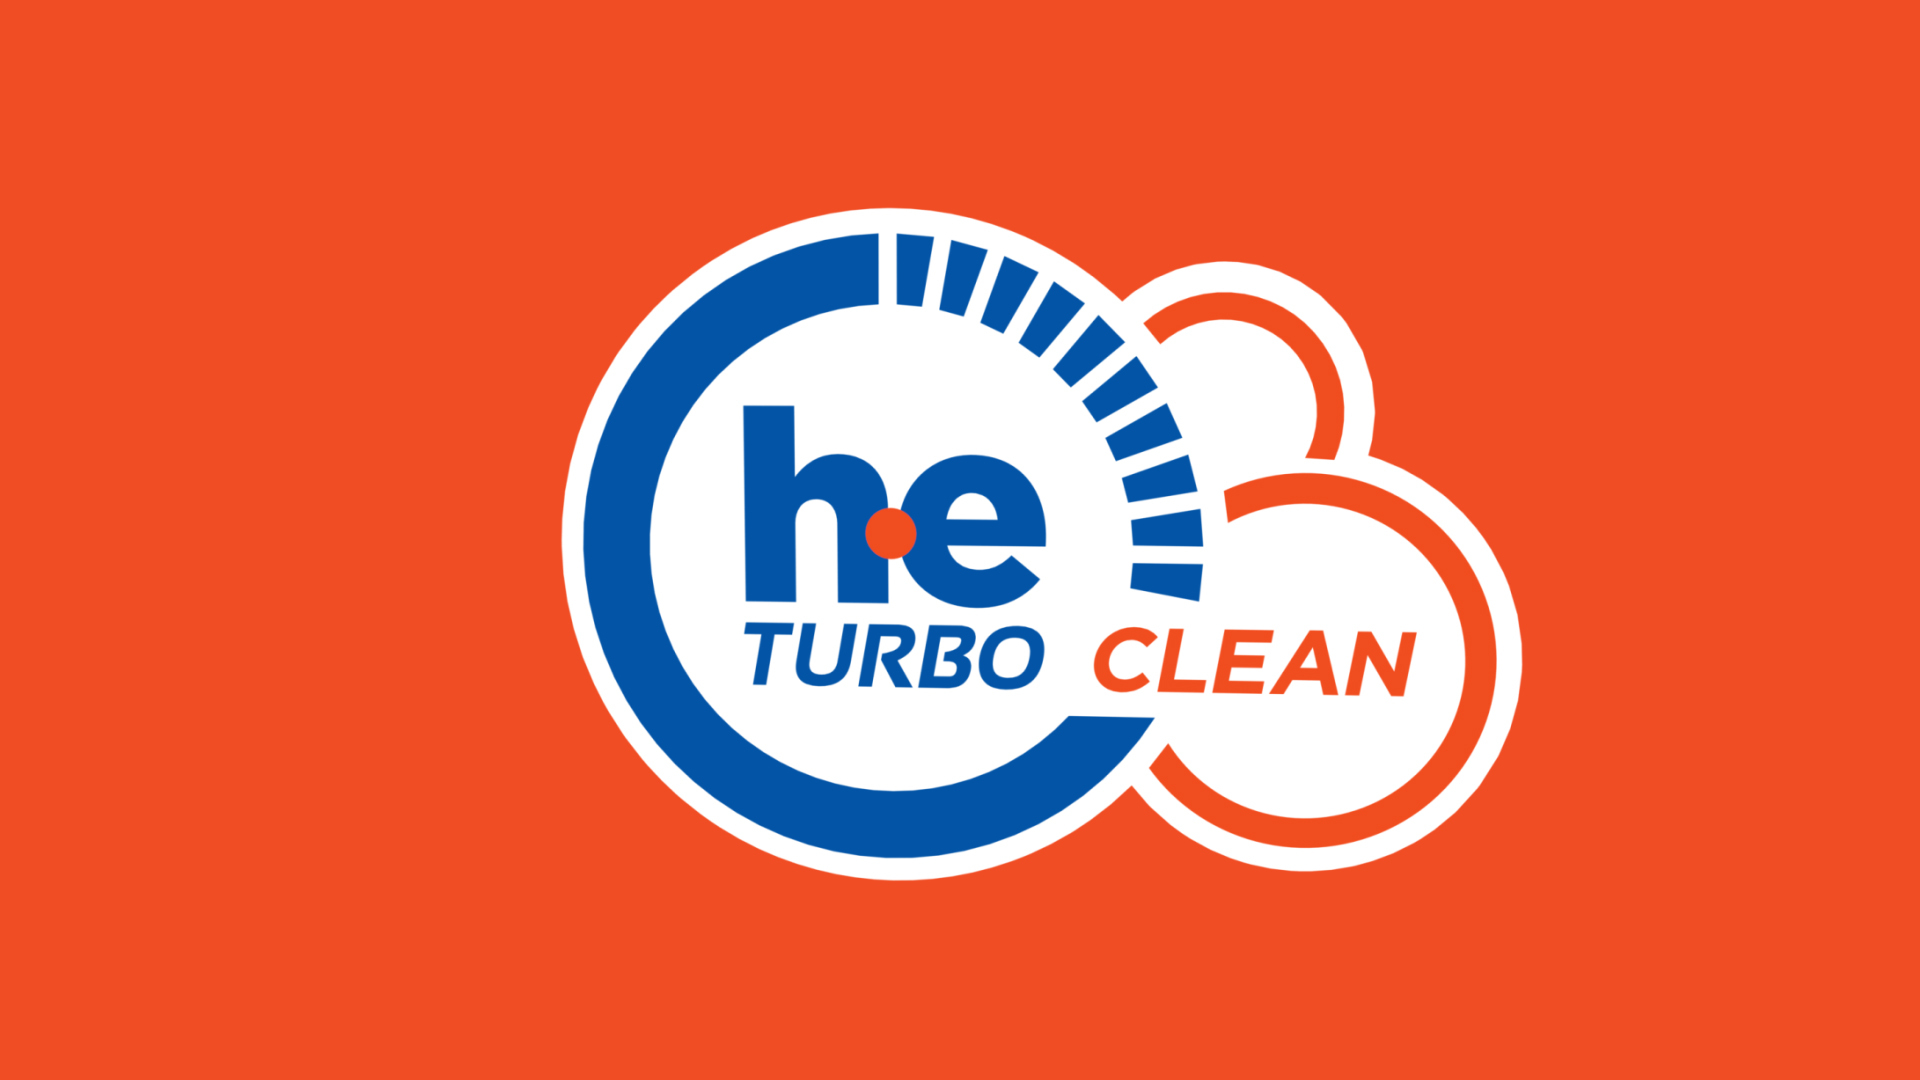 High Efficiency Detergent Vs Regular Tide Introduces A New Standard In He Detergents He Turbo Clean